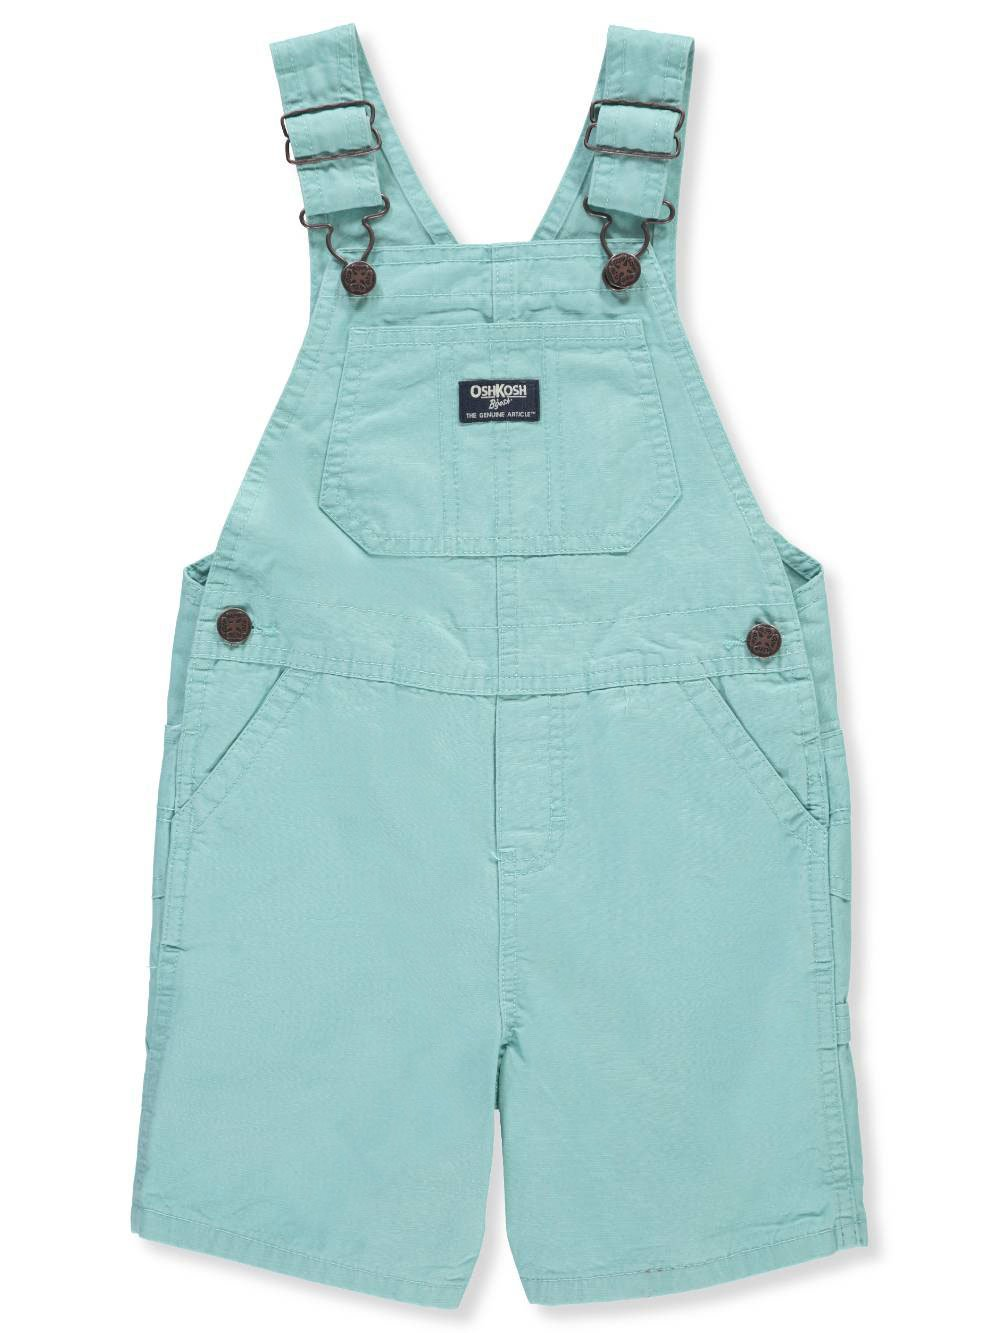 OshKosh Boys' Shortalls 4t